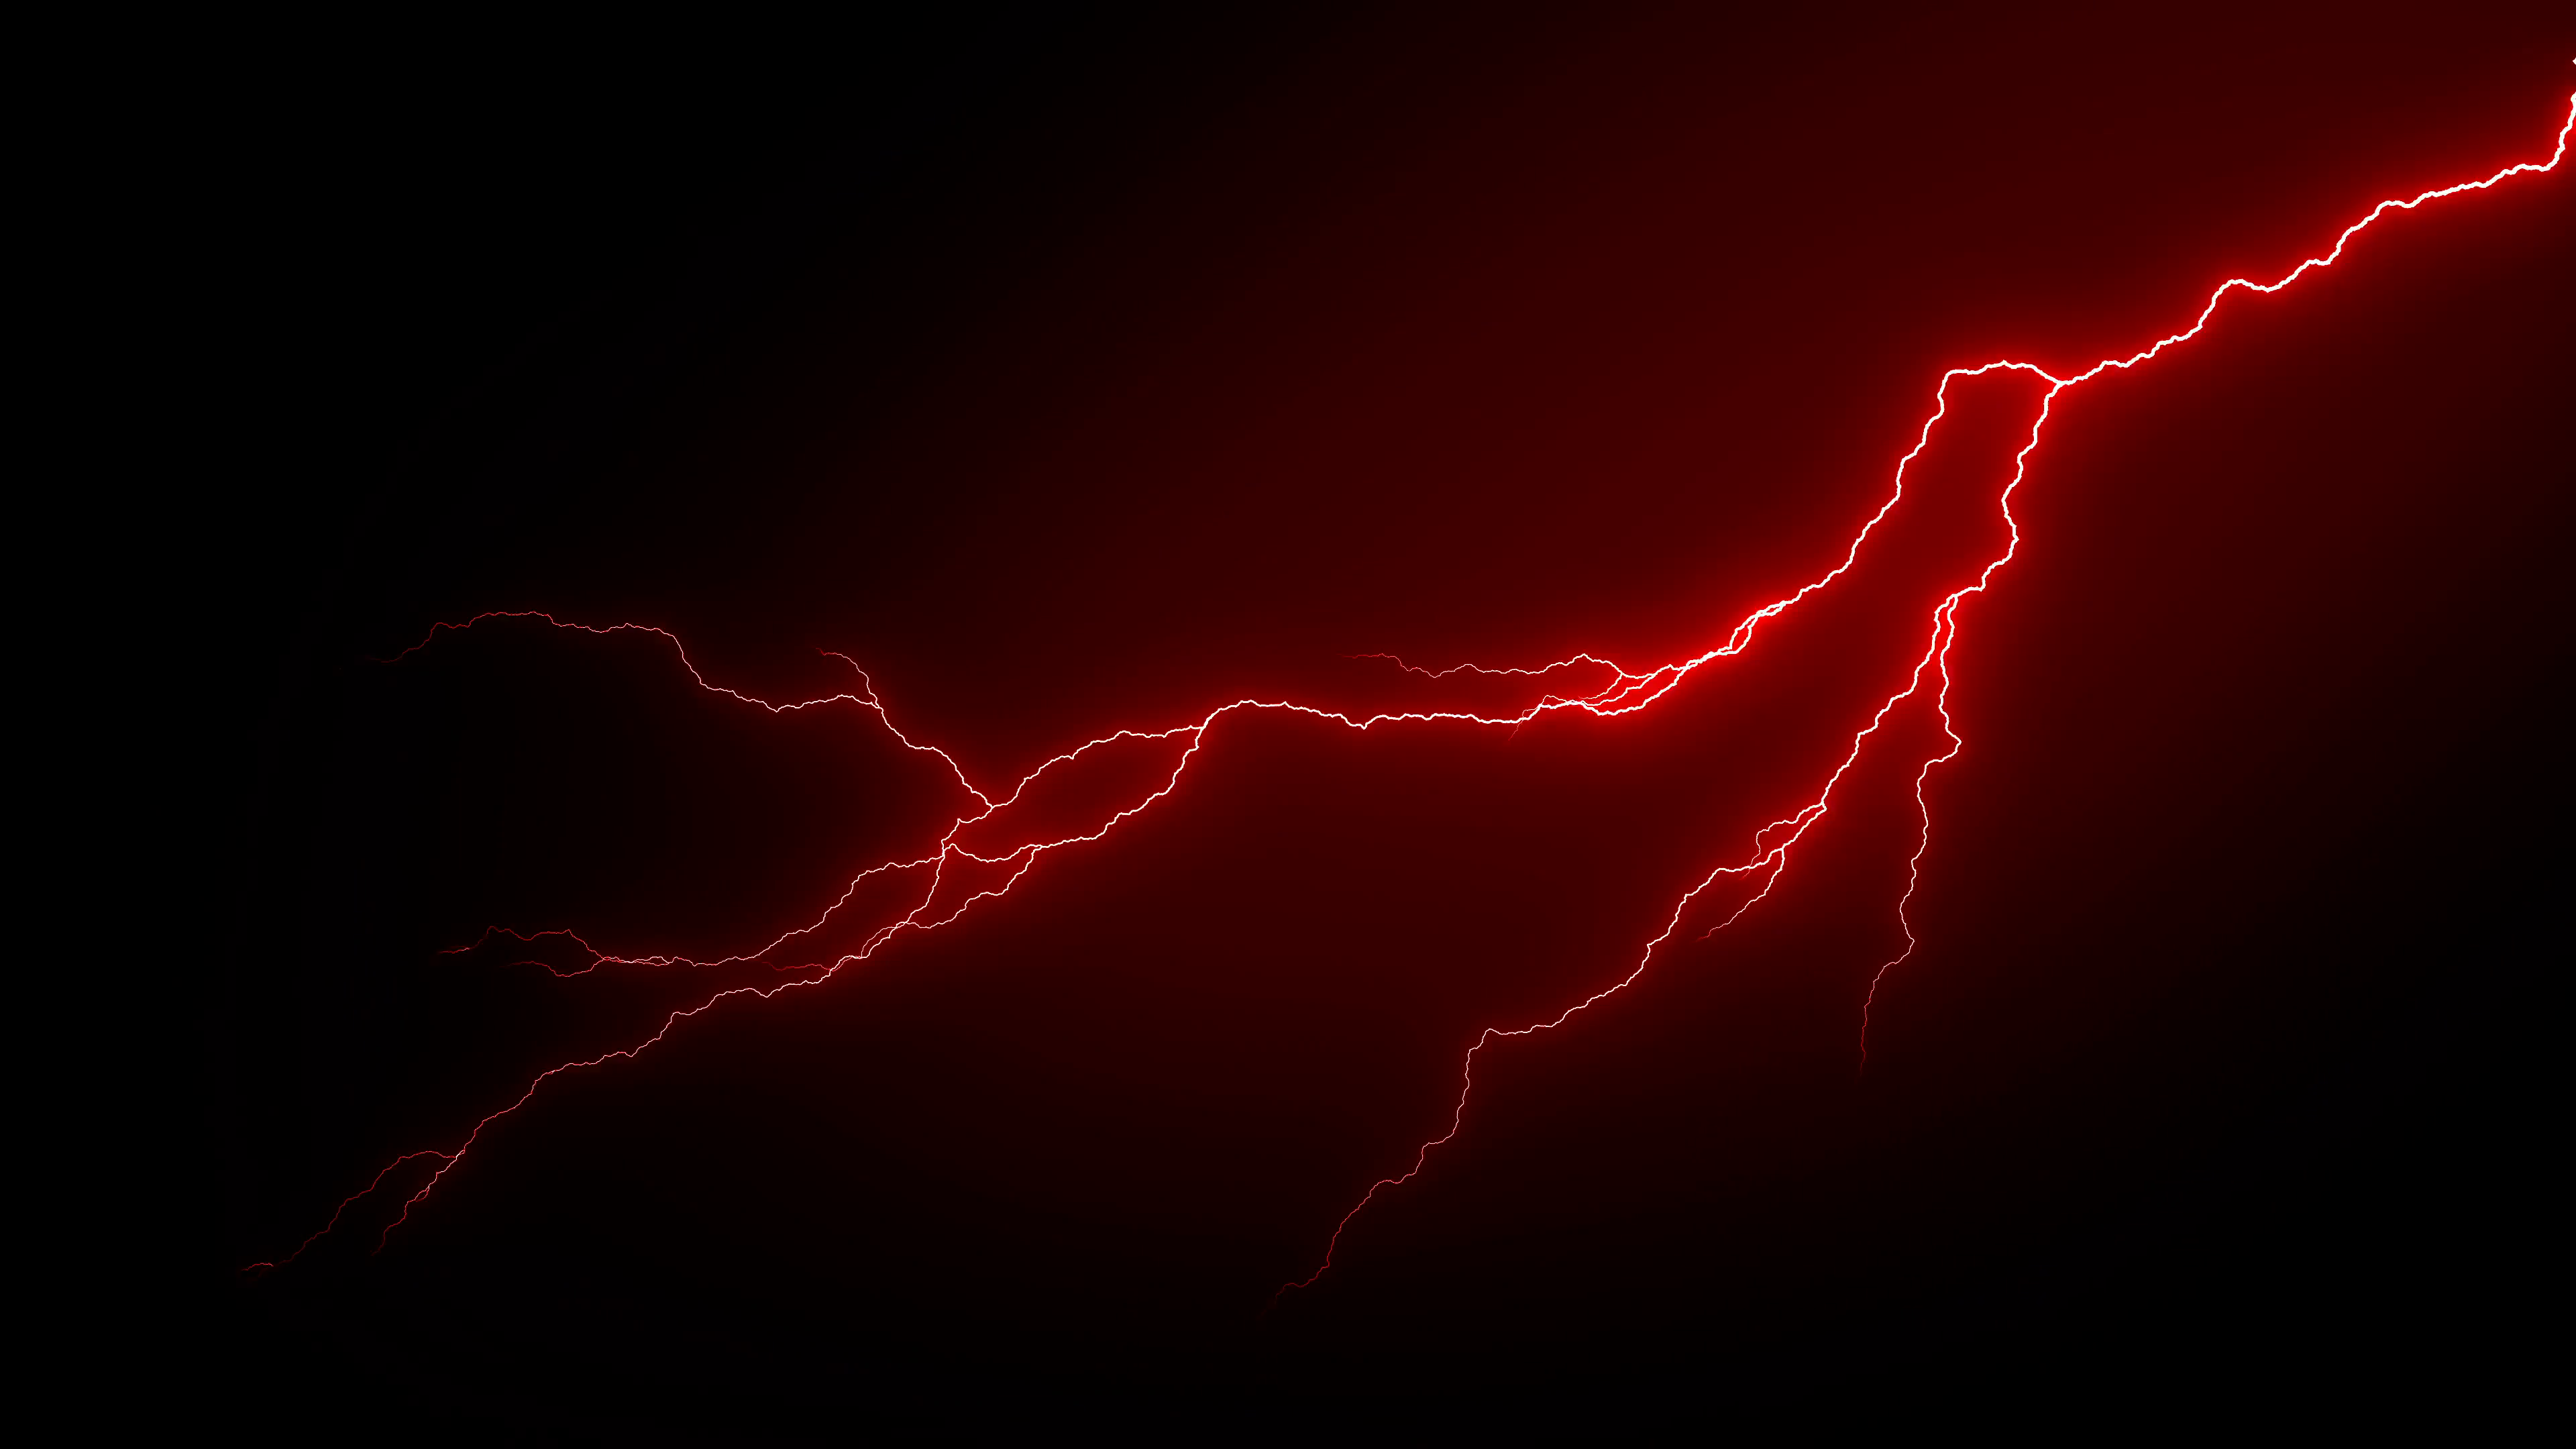 Red Lightning Png (44+ images).